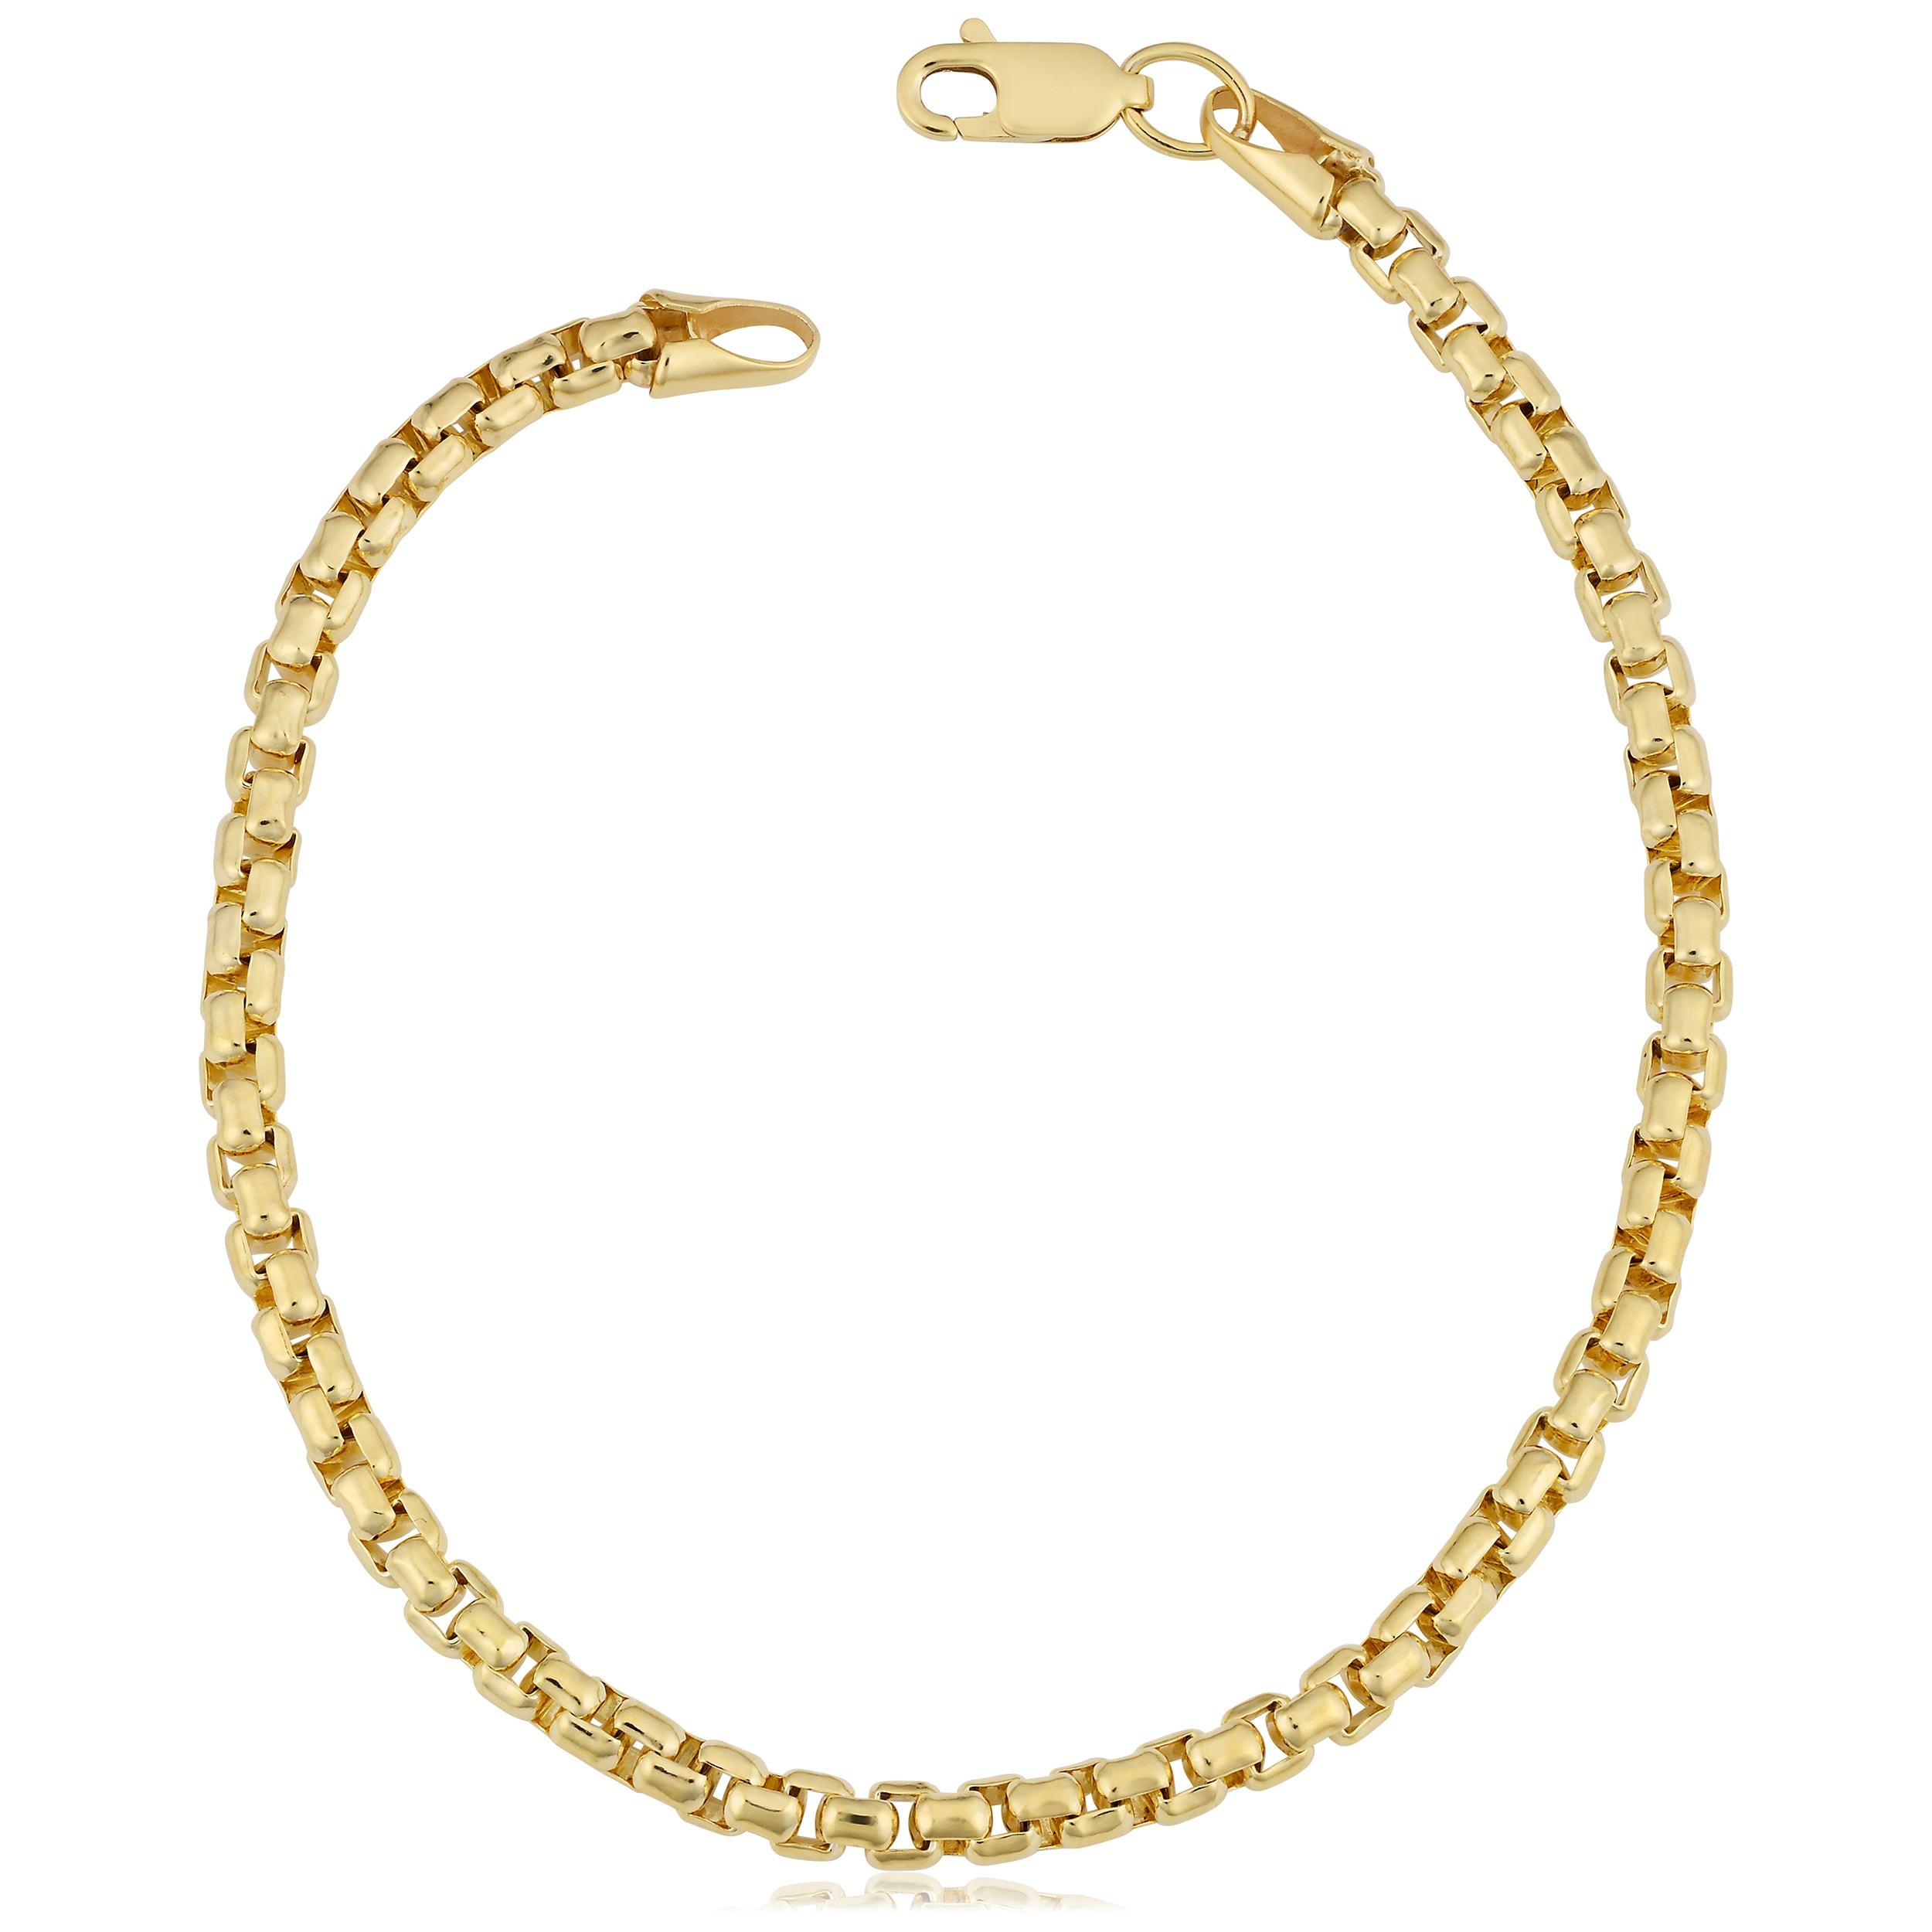 aa8693e4bc7 Buy Gold Bracelets Online at Overstock